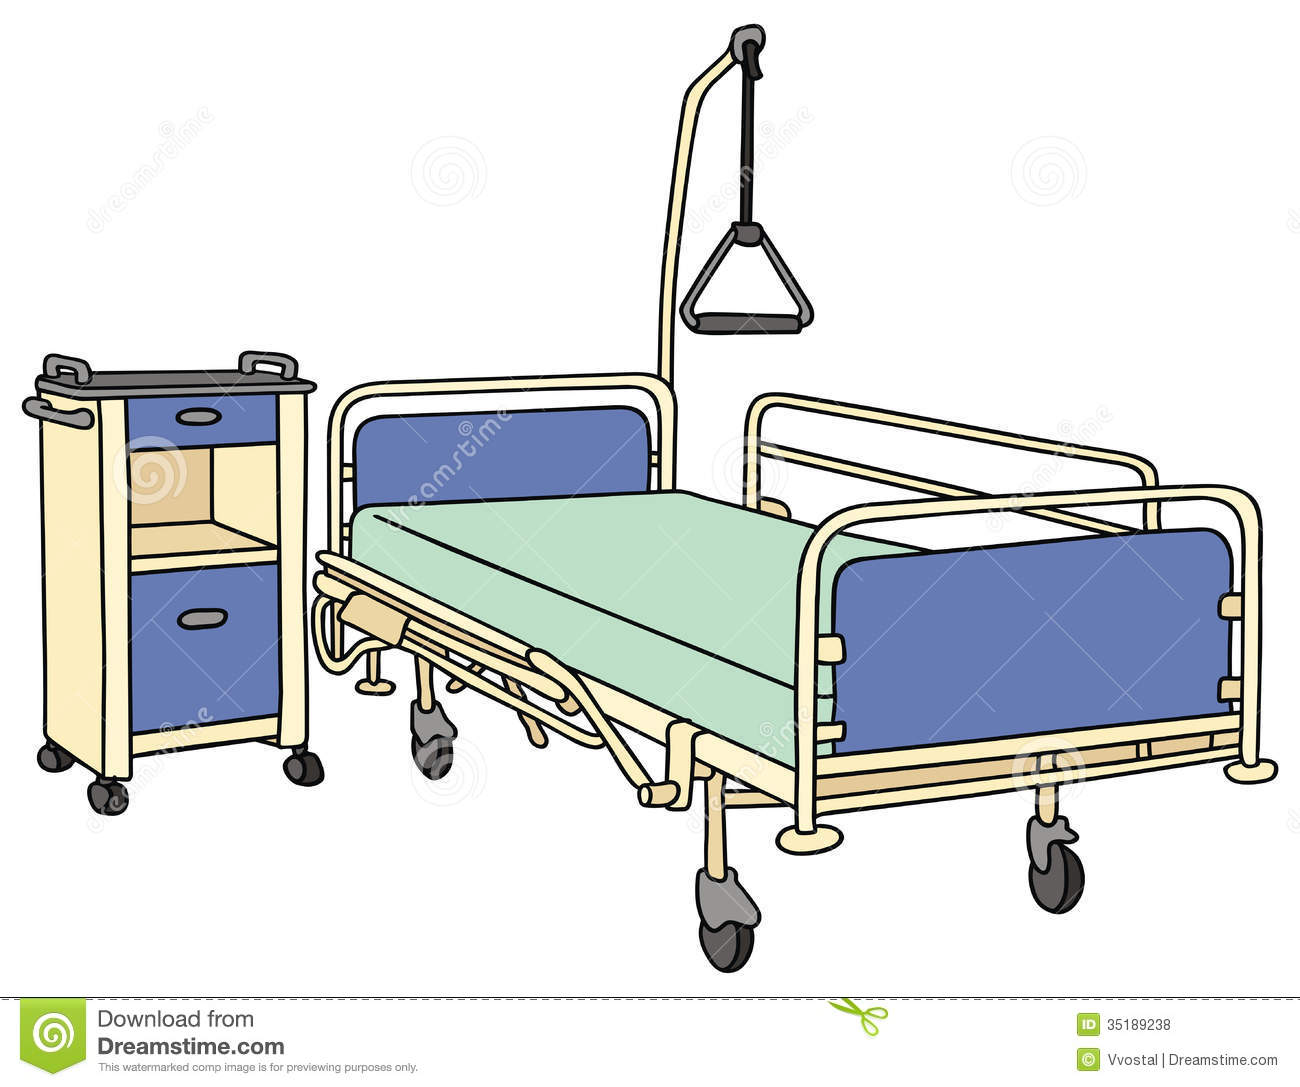 Exceptionnel Hospital Bed Clip Art   Hospital Bed Clipart